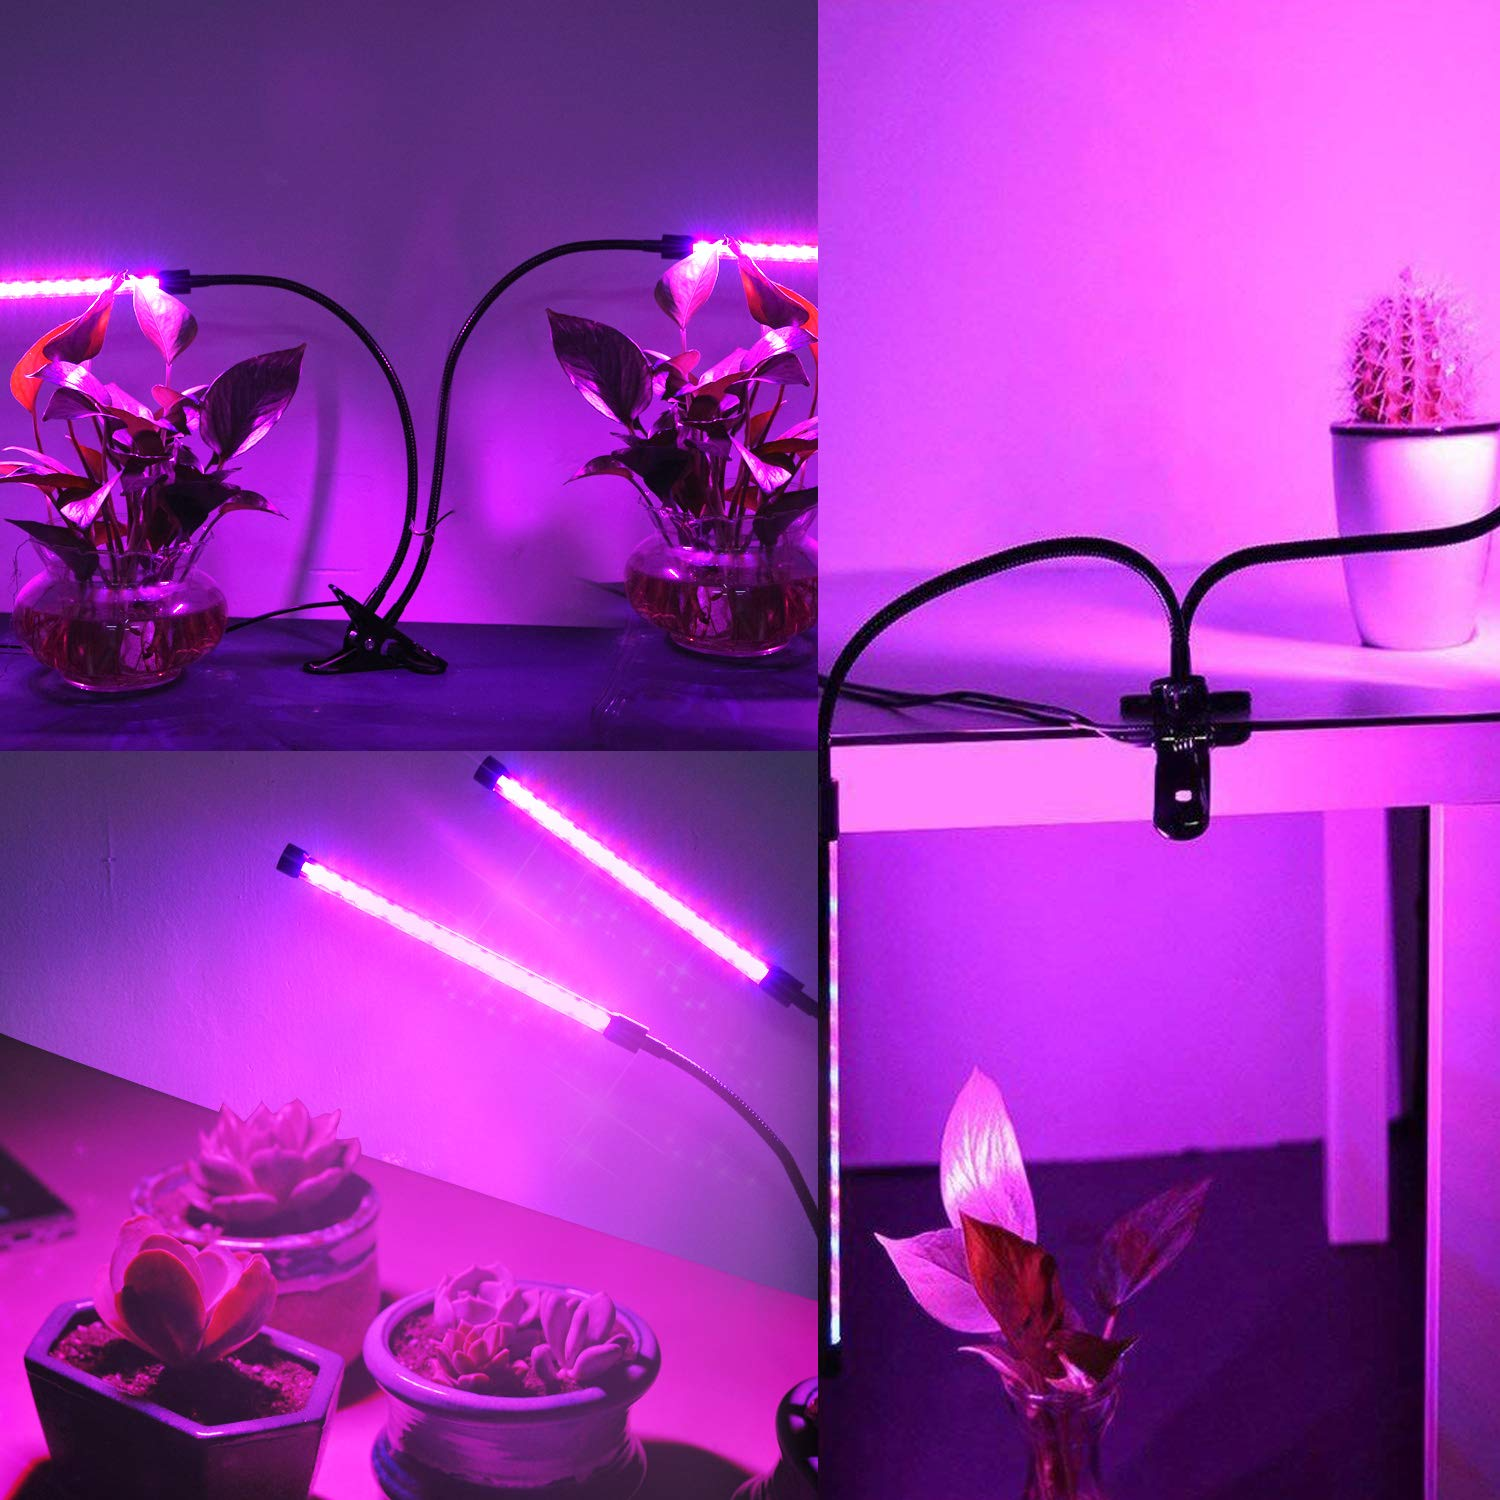 Esonstyle 2018 Upgraded 19W Plant Grow Light Lamps with Auto Turn On/Off Function Dual Head 38 LED 10 Dimmable Levels Grow Lamp Bulbs, 3/9/12H Timer, Spectrum Switching Adjustable (Auto Turn on/Off)